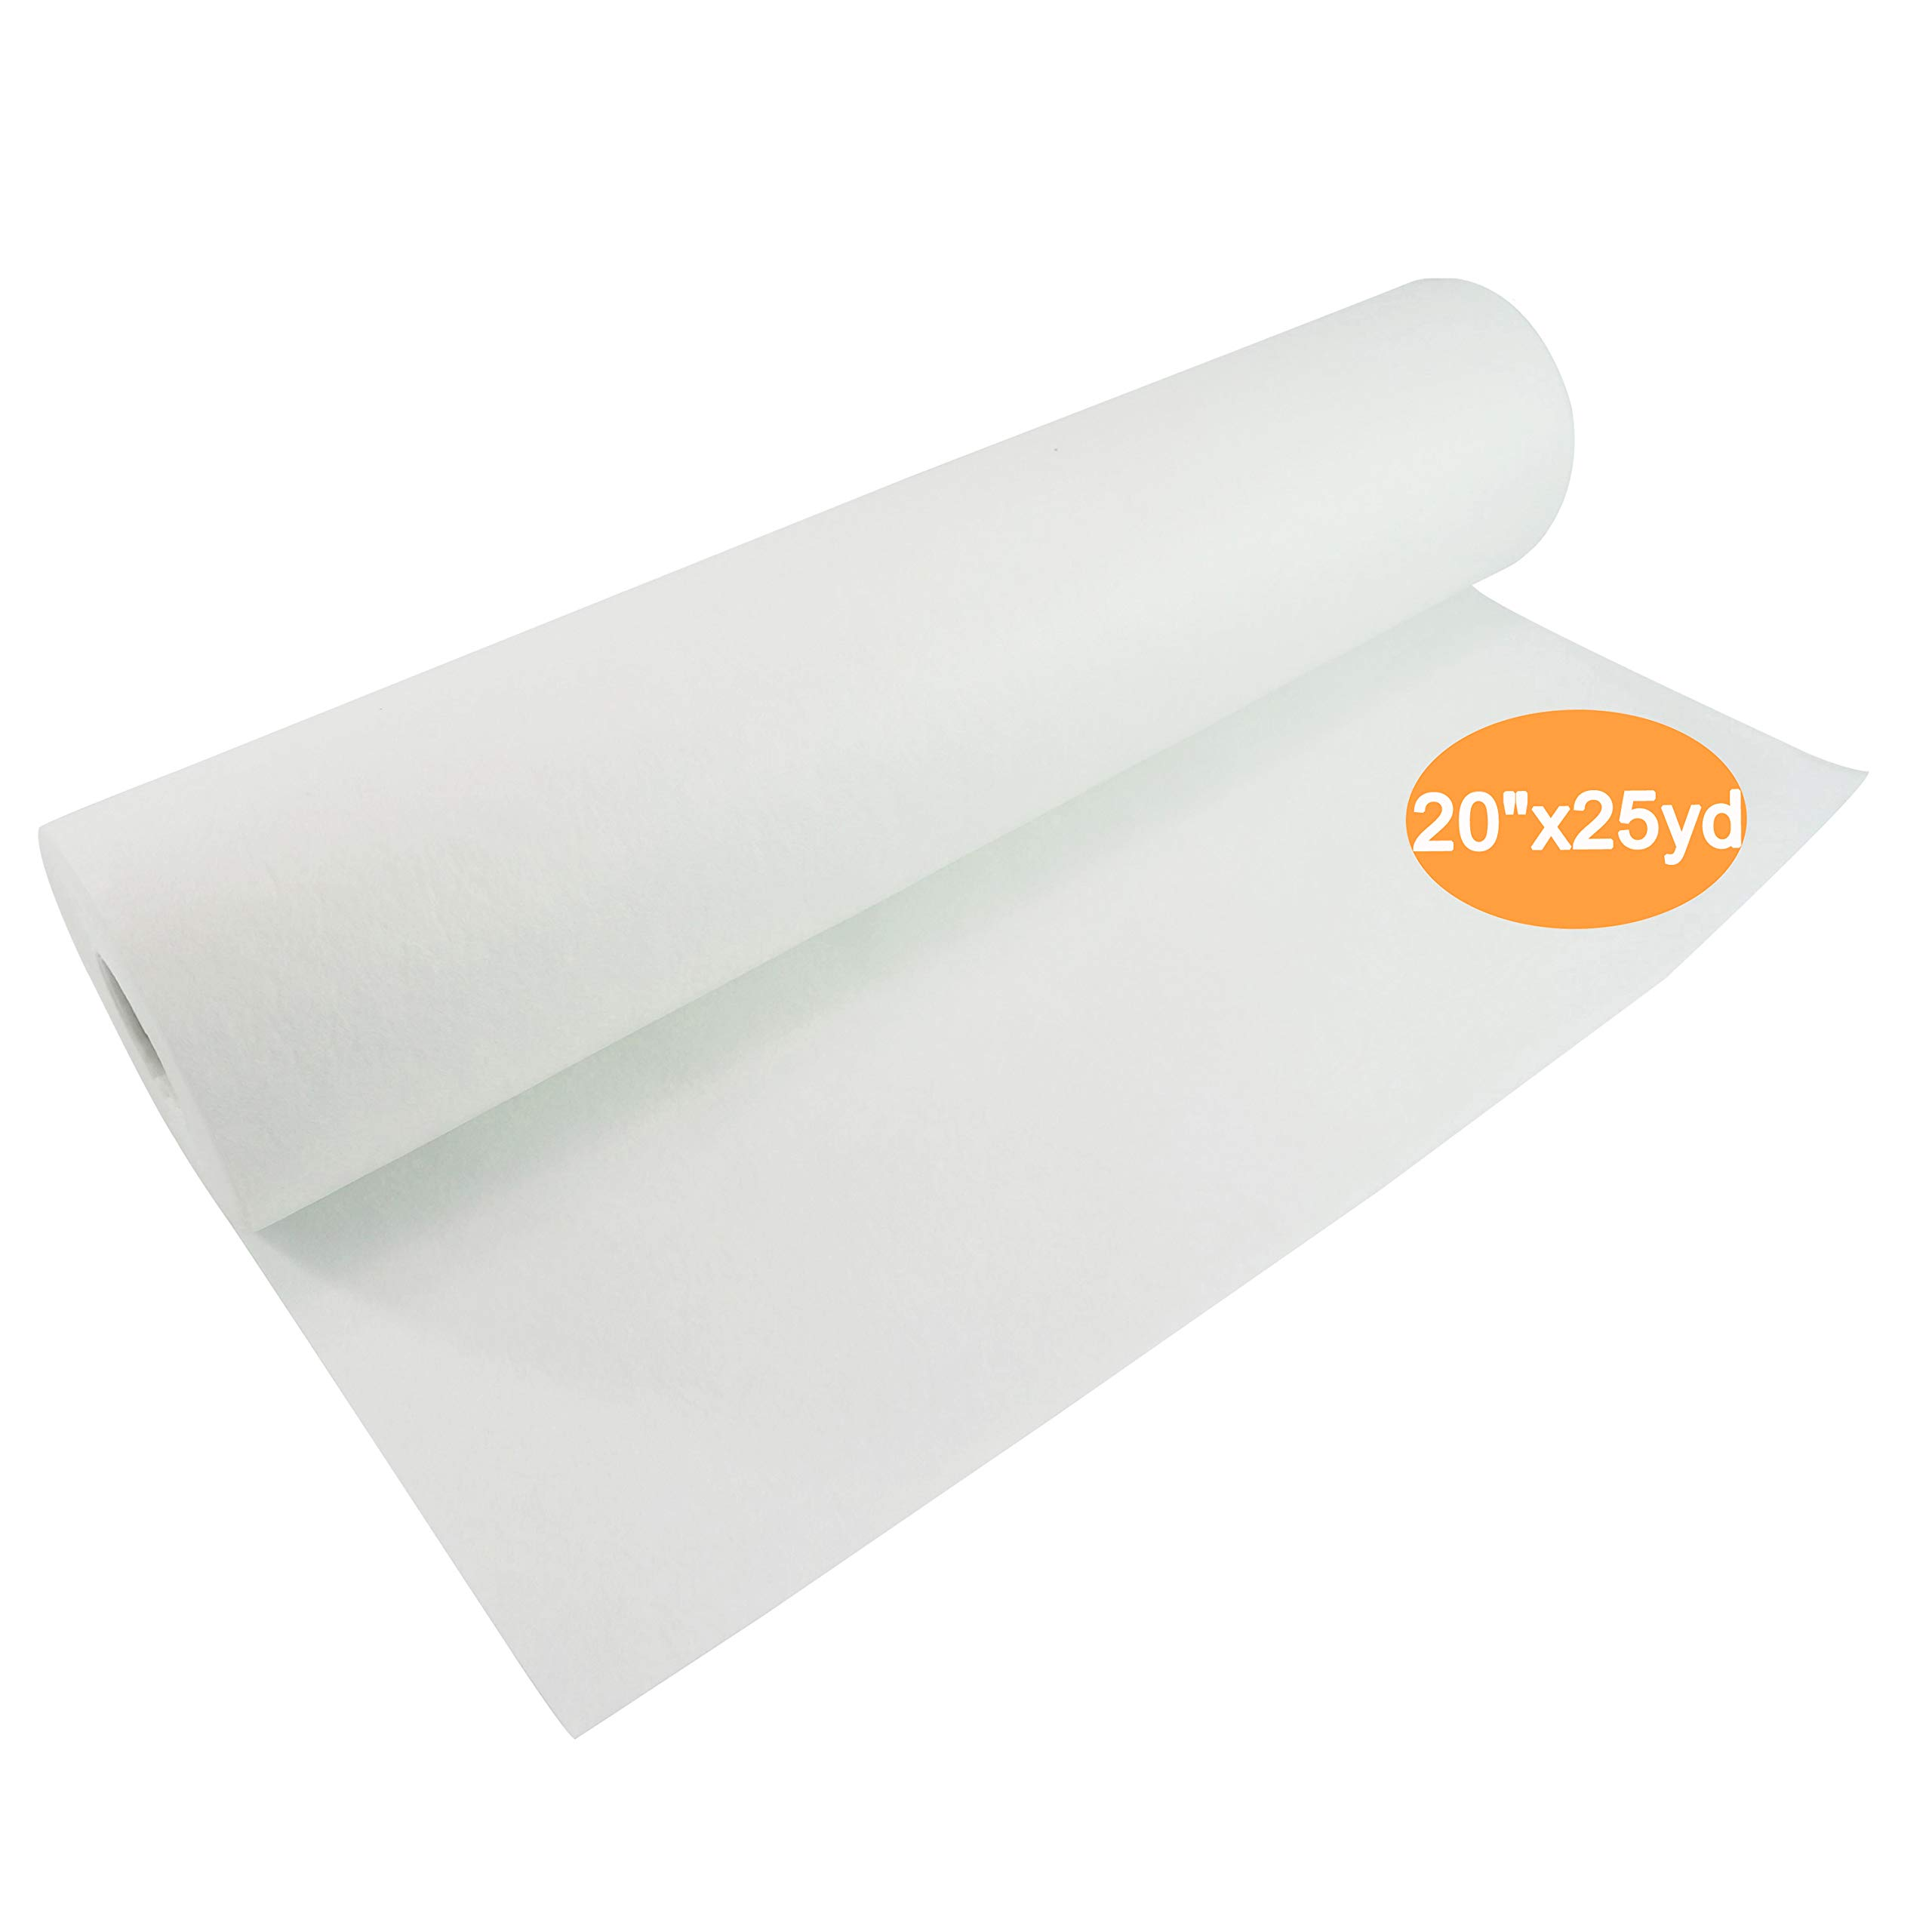 New brothread Cut Away Machine Embroidery Stabilizer Backing 20'' x 25 Yd roll - Medium Weight 2.5 Ounce - Cut into Any Sizes - for Machine Embroidery and Hand Sewing by New brothread